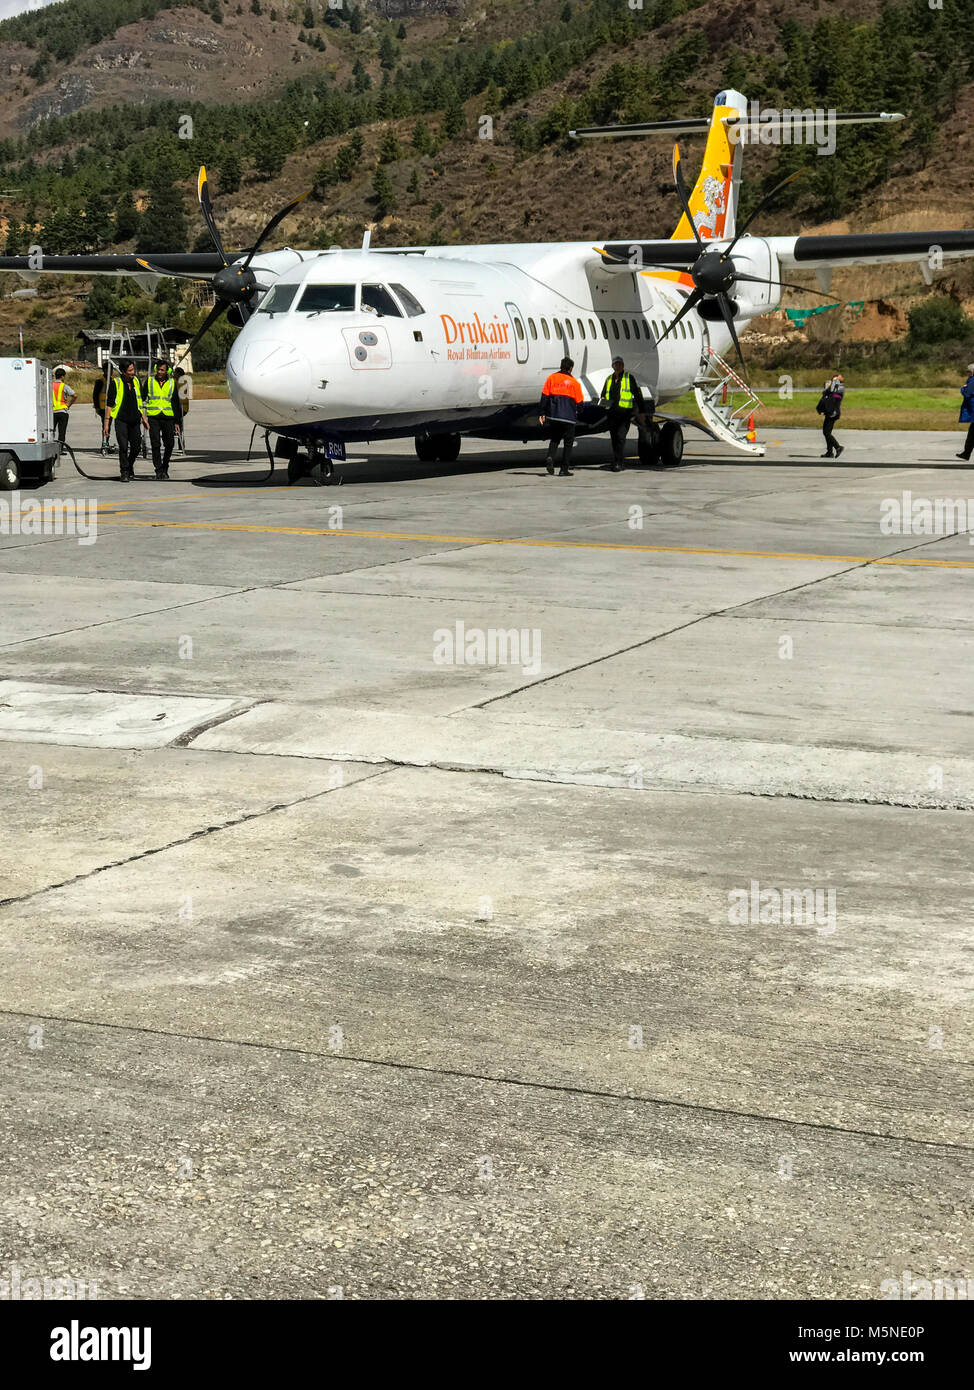 Paro, Bhutan.  Drukair Aircraft at Paro Airport. - Stock Image